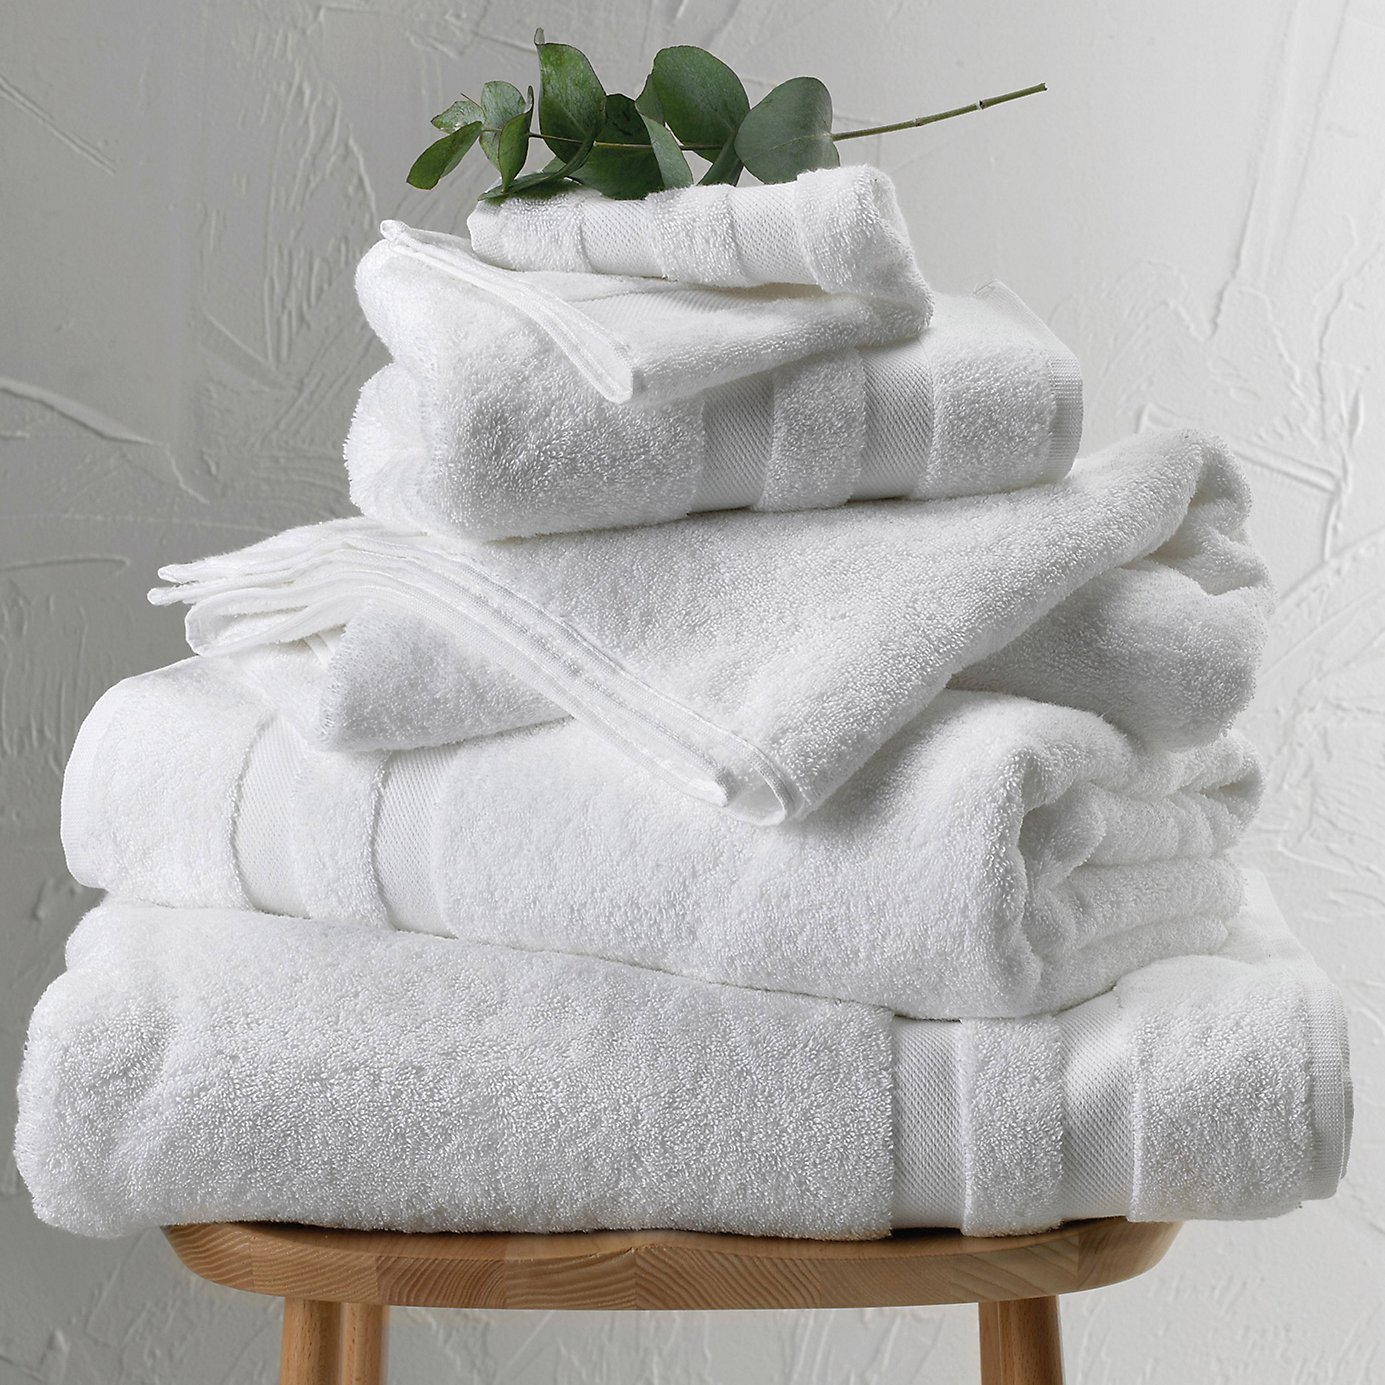 white-company-towels